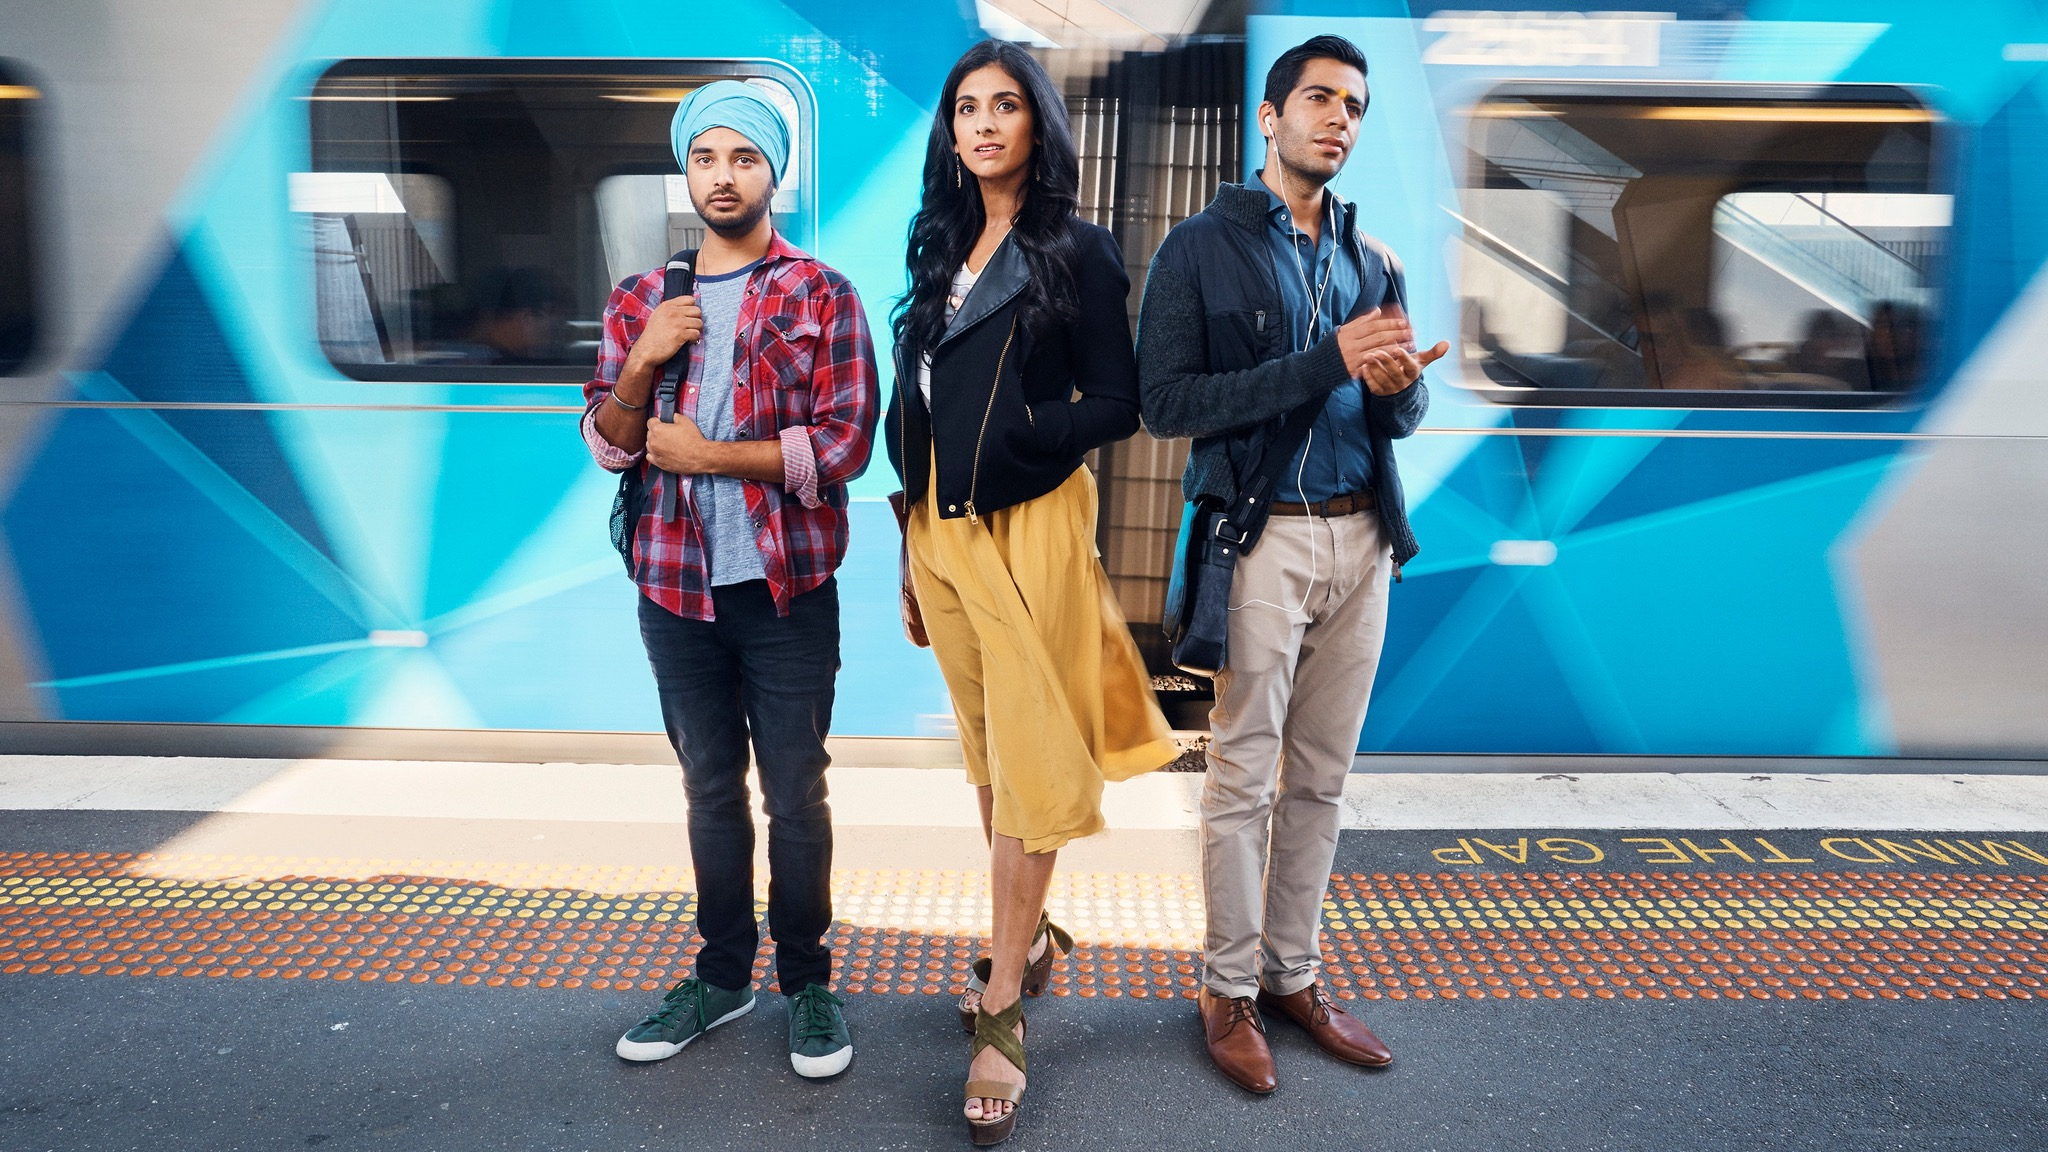 A young Indian woman and two young Indian men standing on a Melbourne train platform.